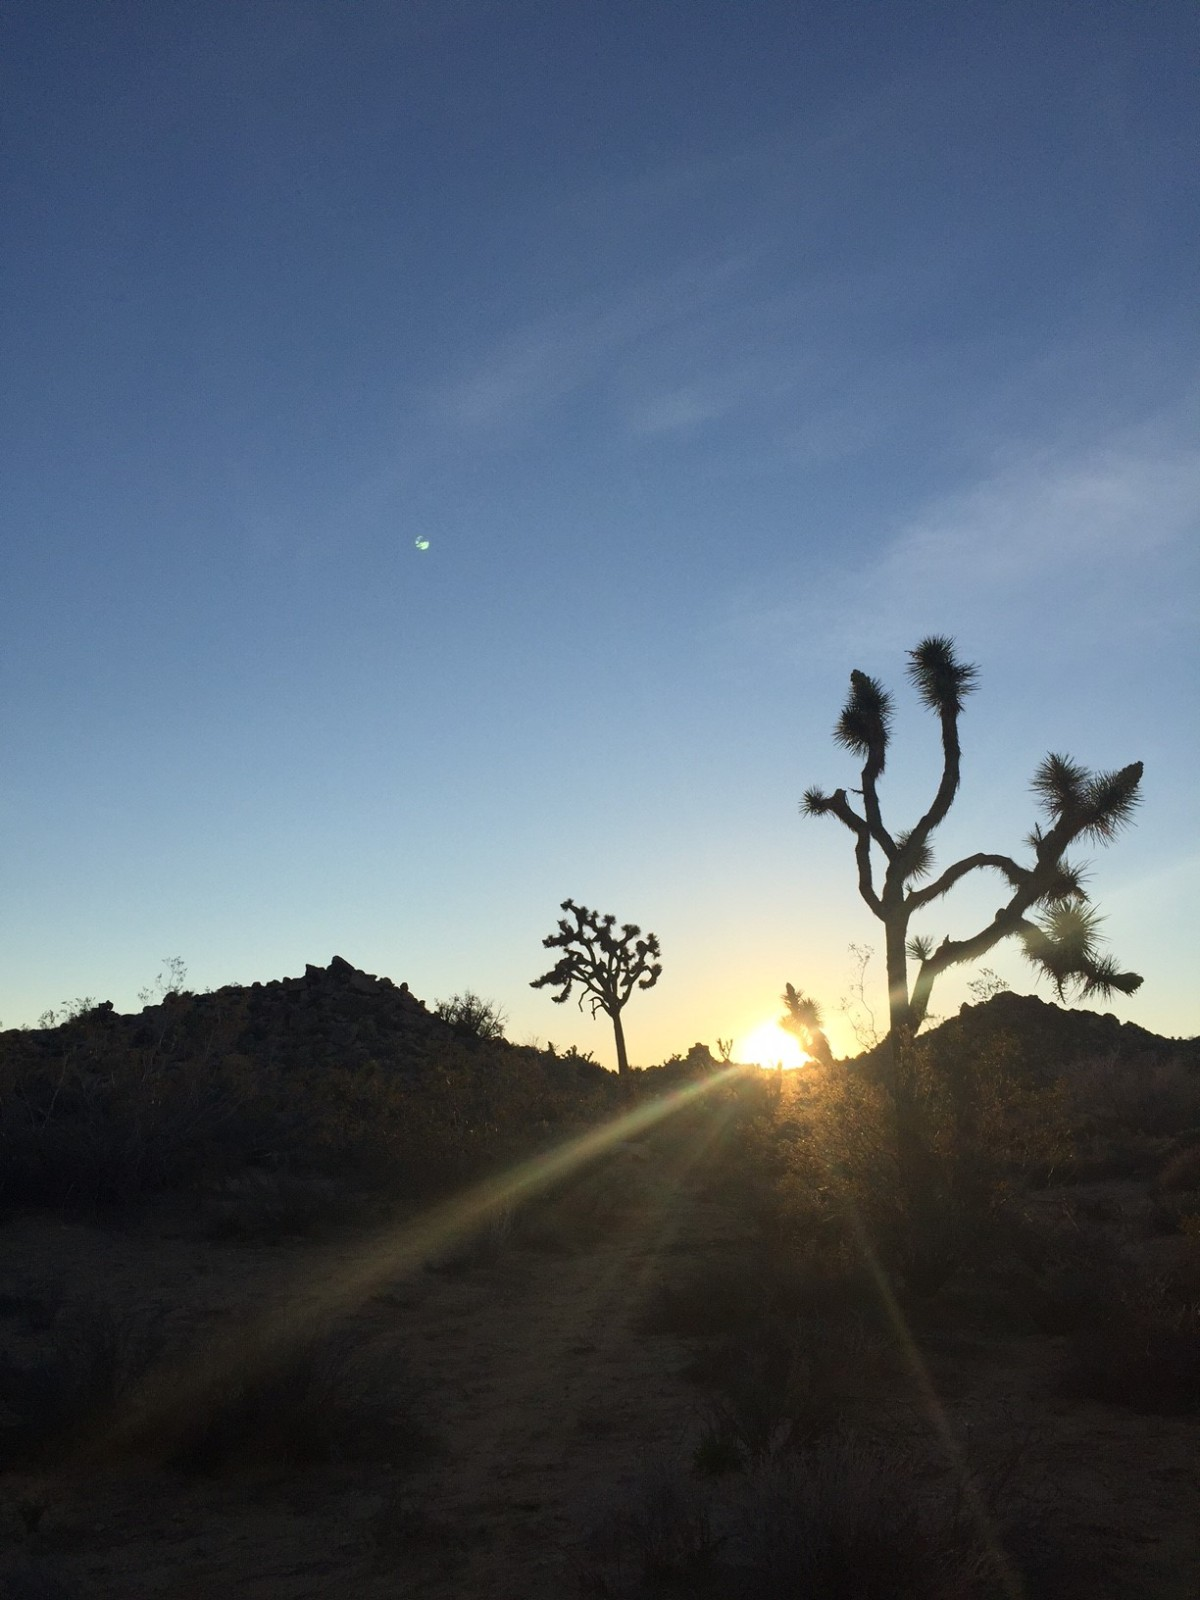 Sunday Hikes: Lions, Tarantulas, and Giant Hares on the Boy Scout Trail in Joshua TreeNP